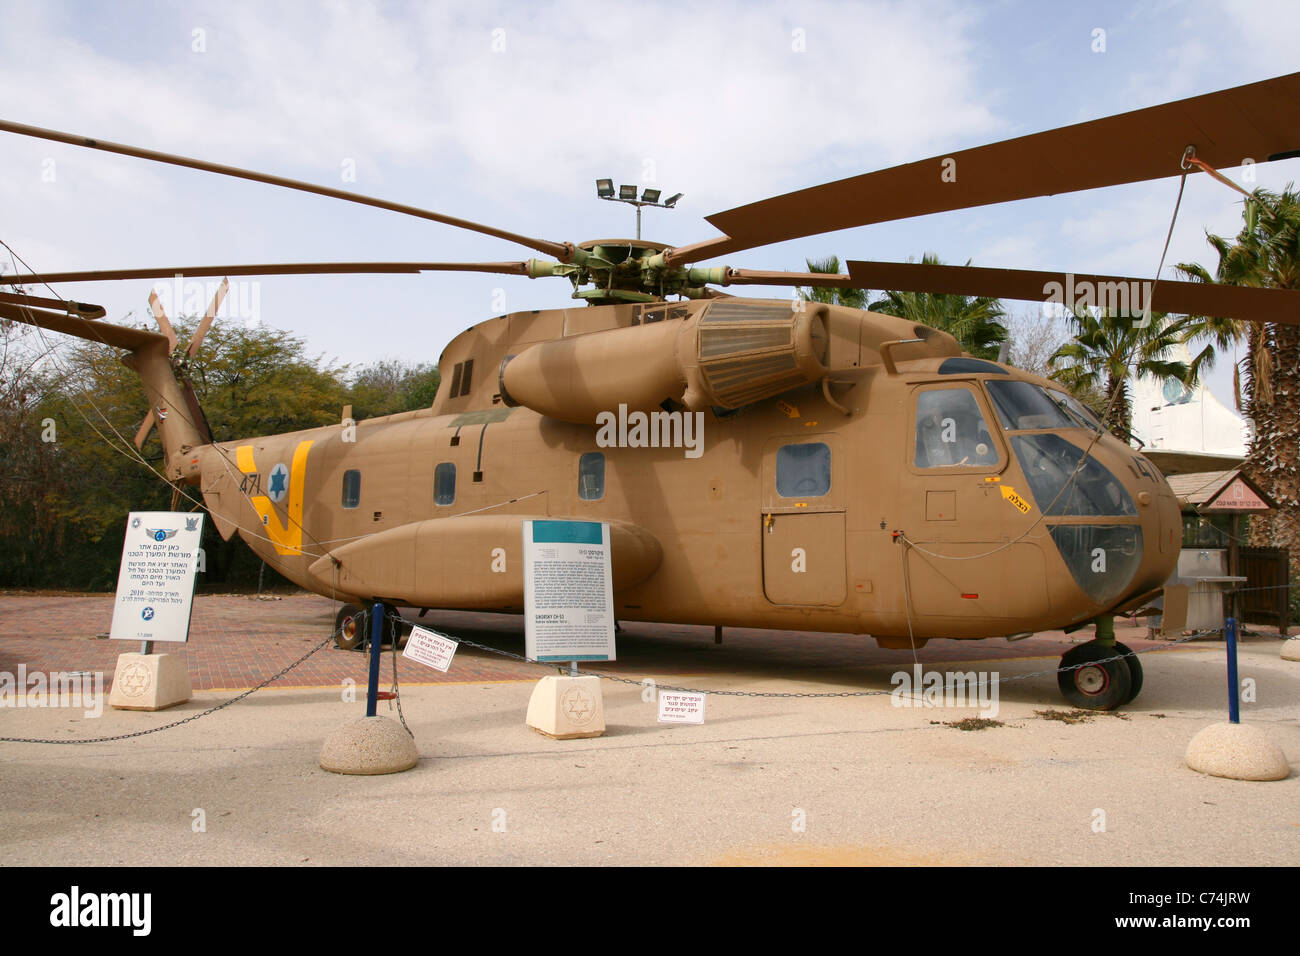 Israeli IDF CH-53 Stallion helicopter on display in the Israel Air Force Museum at Be'er Sheva - Stock Image